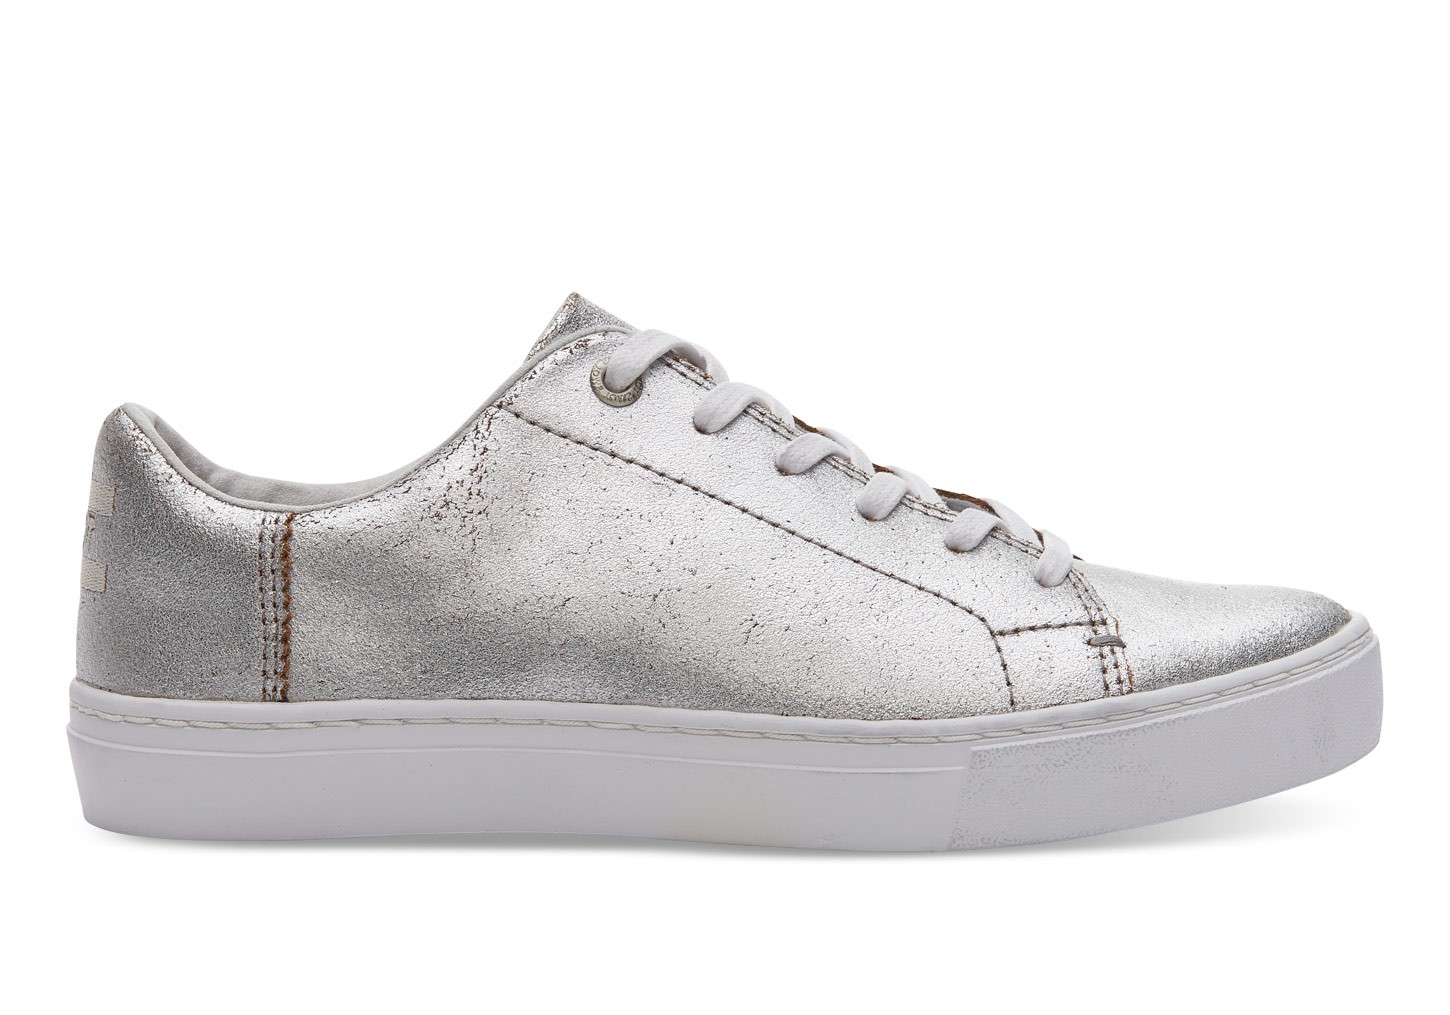 Toms Women's Lenox Metallic Lace Up Sneakers In Silver